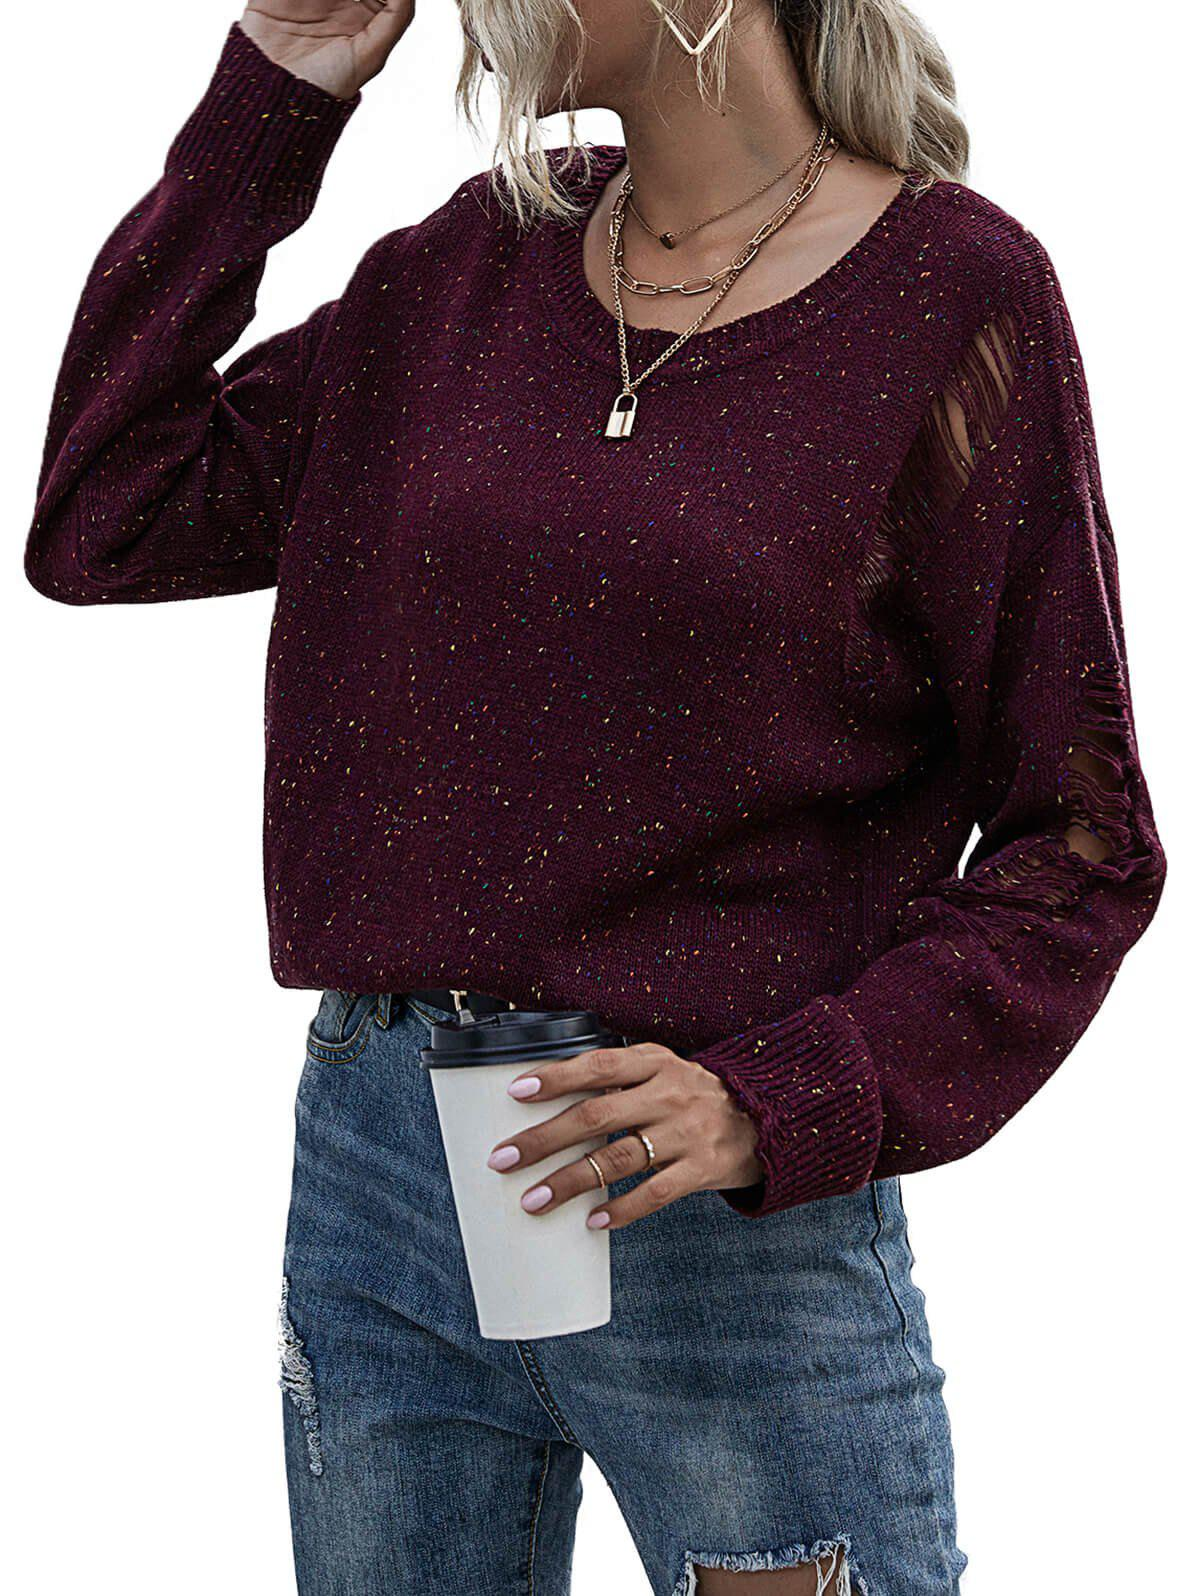 Ripped Distressed Confetti Knit Sweater - DEEP RED S